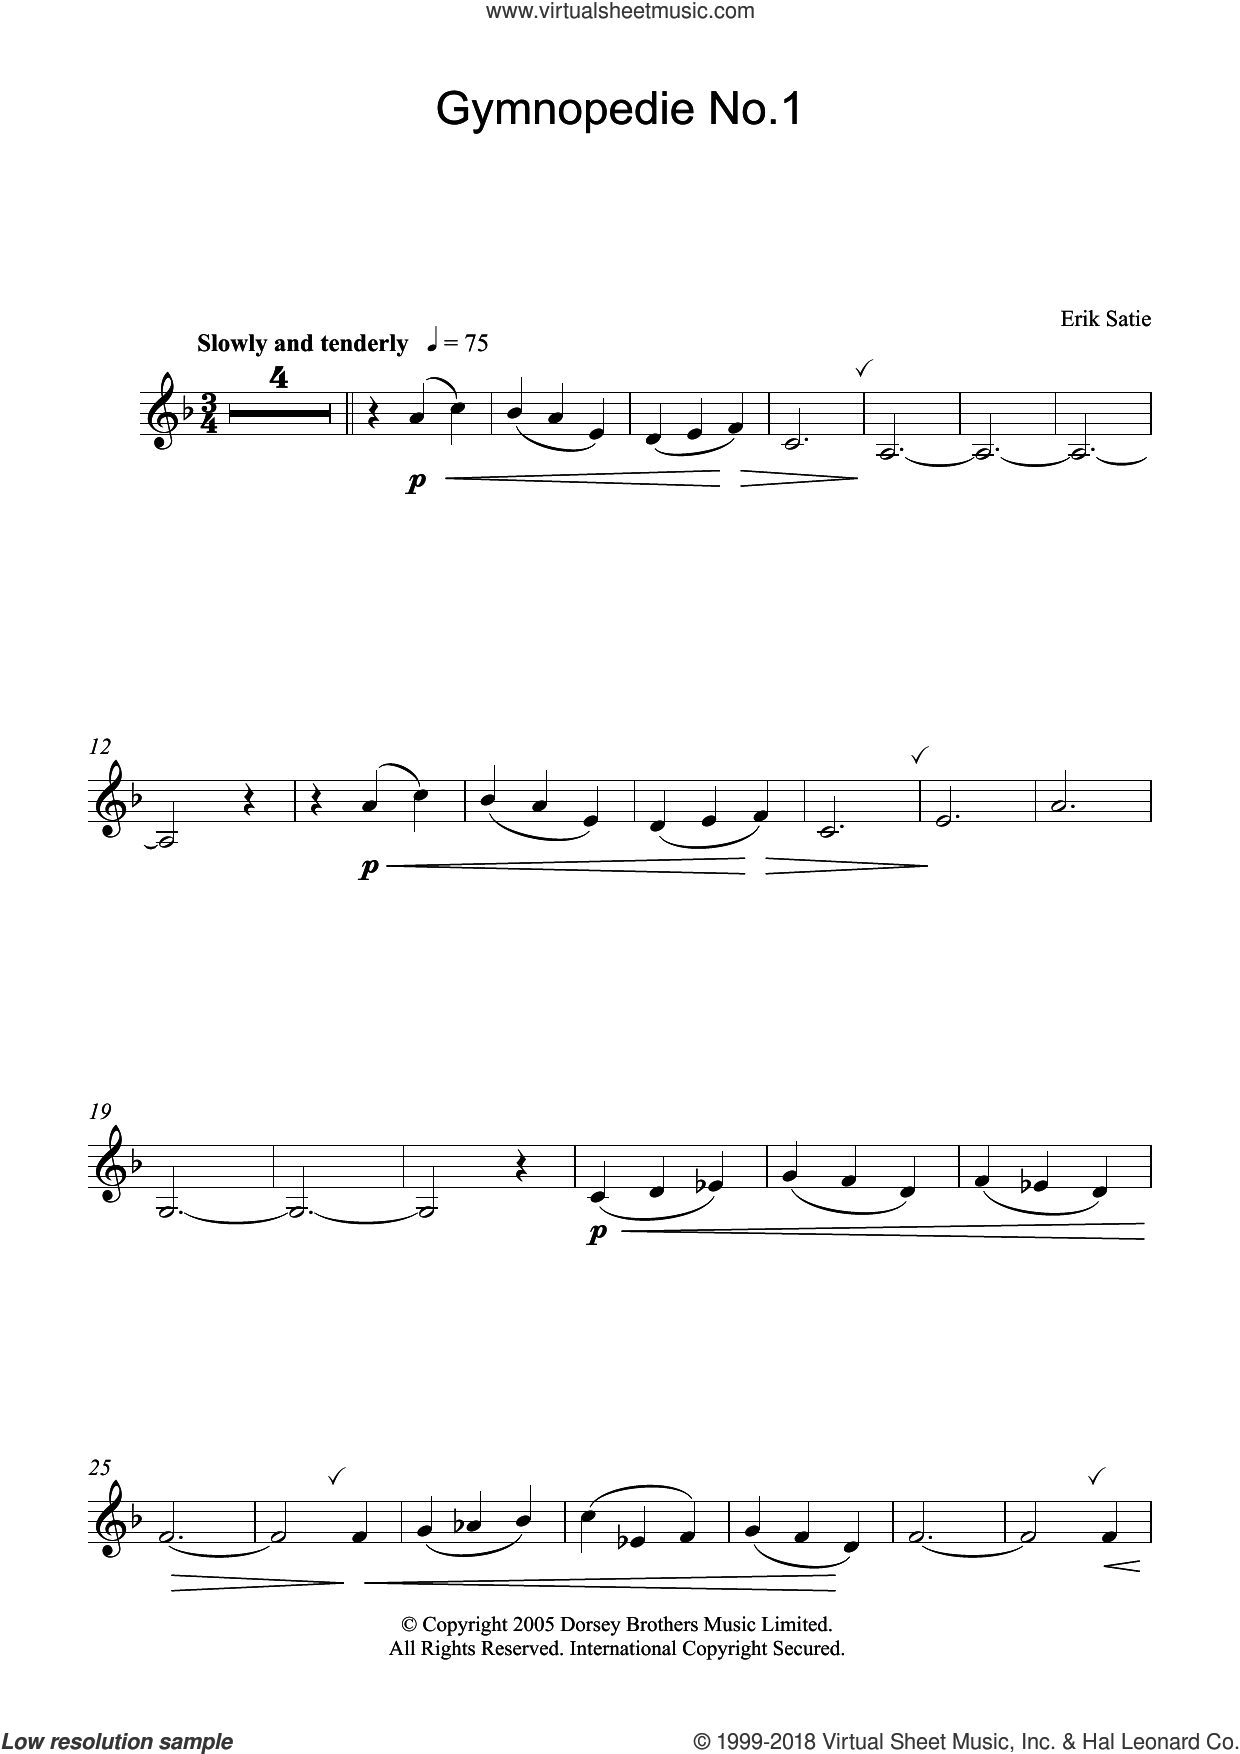 Gymnopedie No. 1 sheet music for clarinet solo by Erik Satie, classical score, intermediate skill level